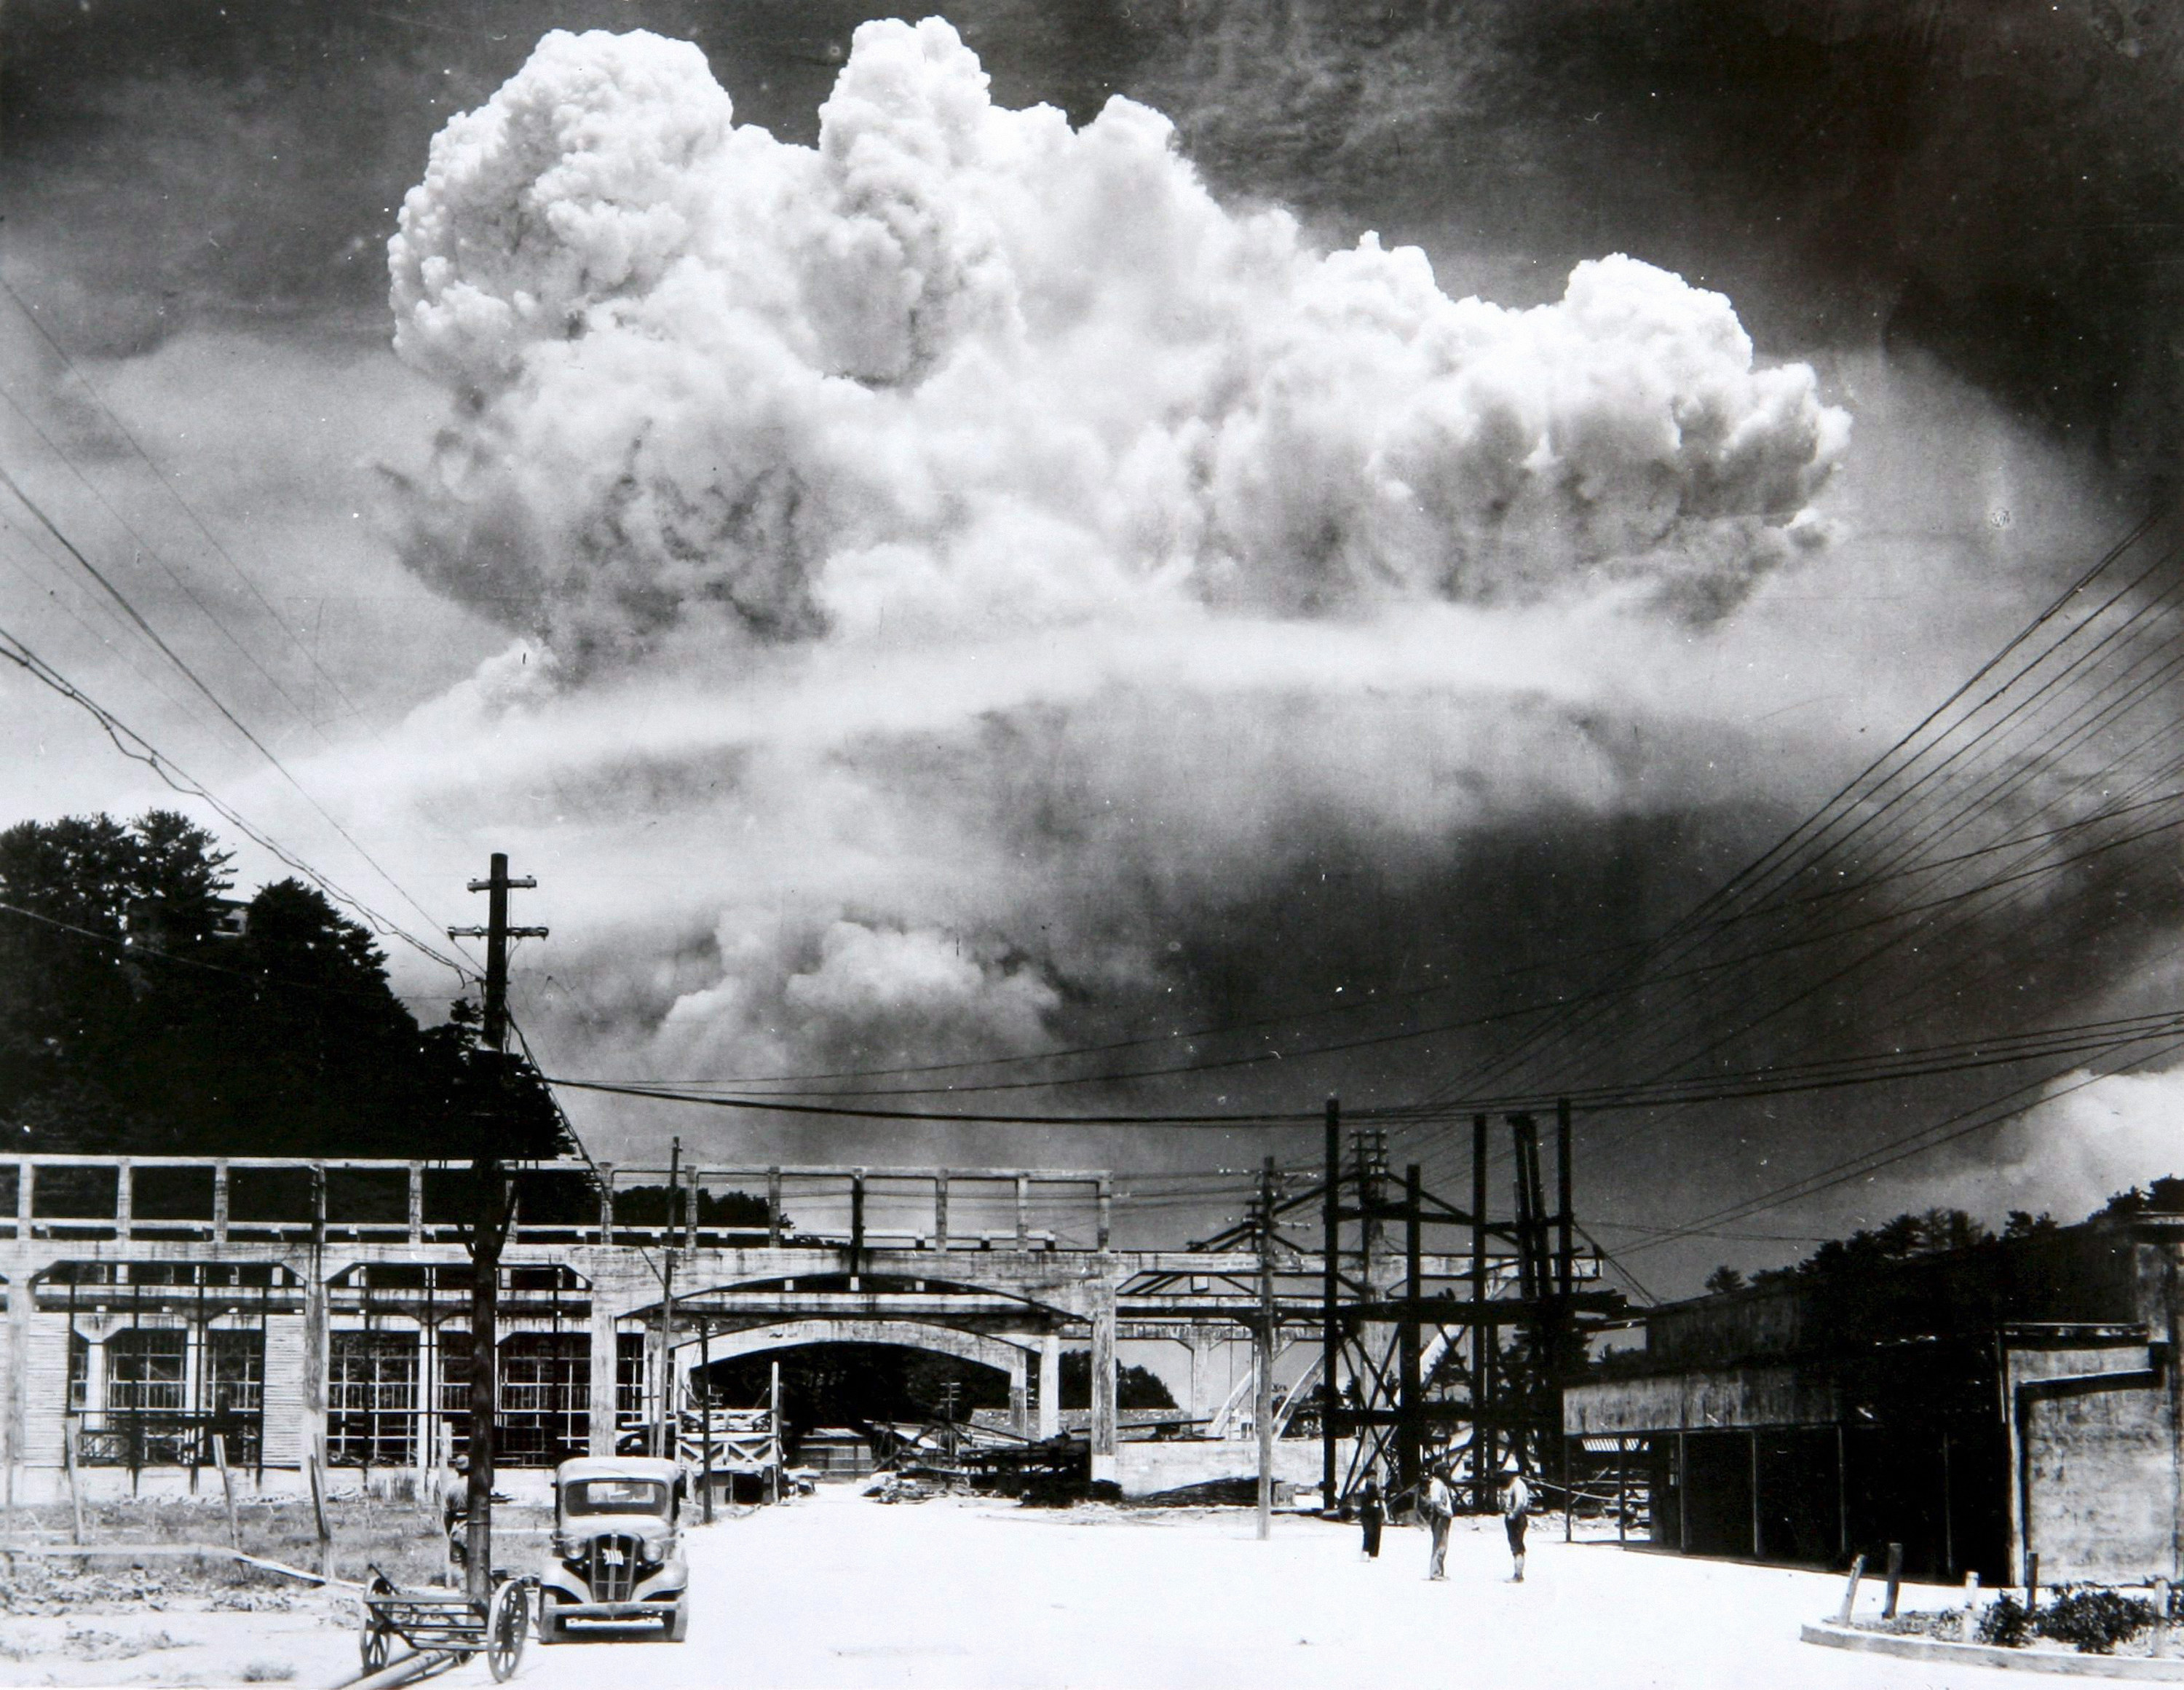 A mushroom cloud seen over railroad tracks